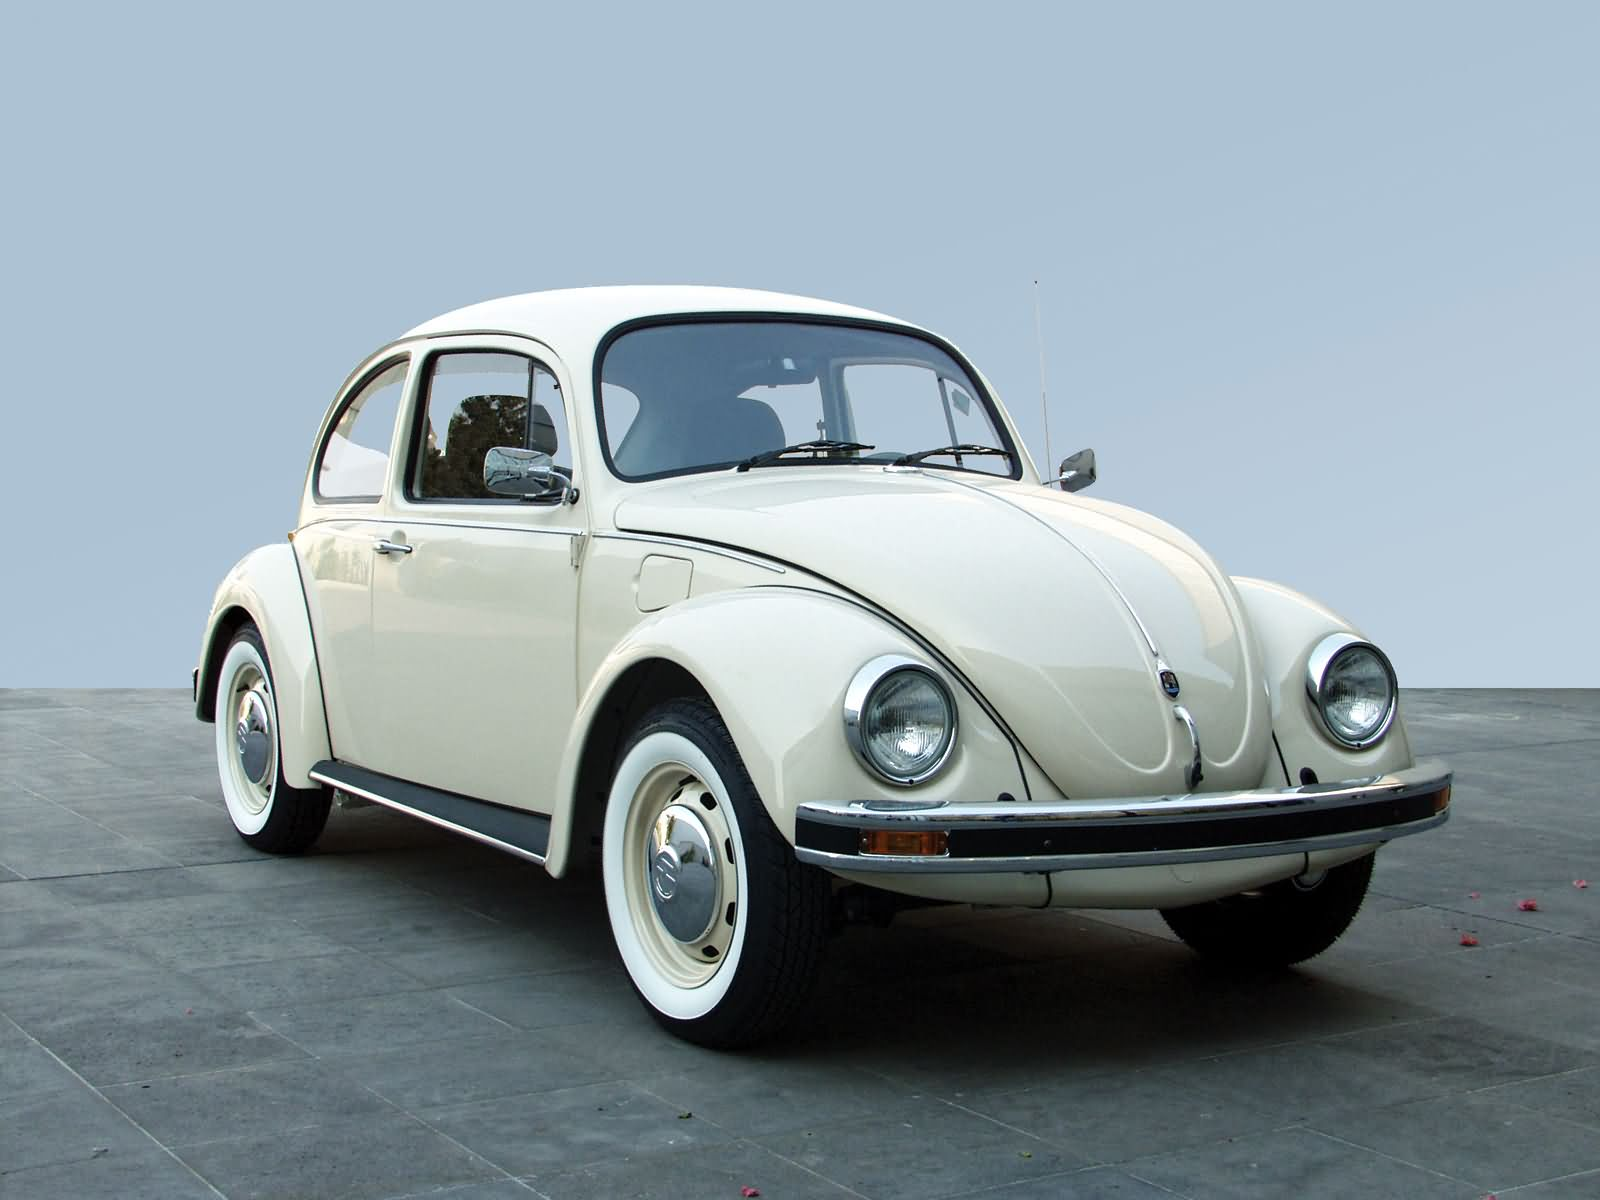 Volkswagen Beetle photos - PhotoGallery with 101 pics| CarsBase.com